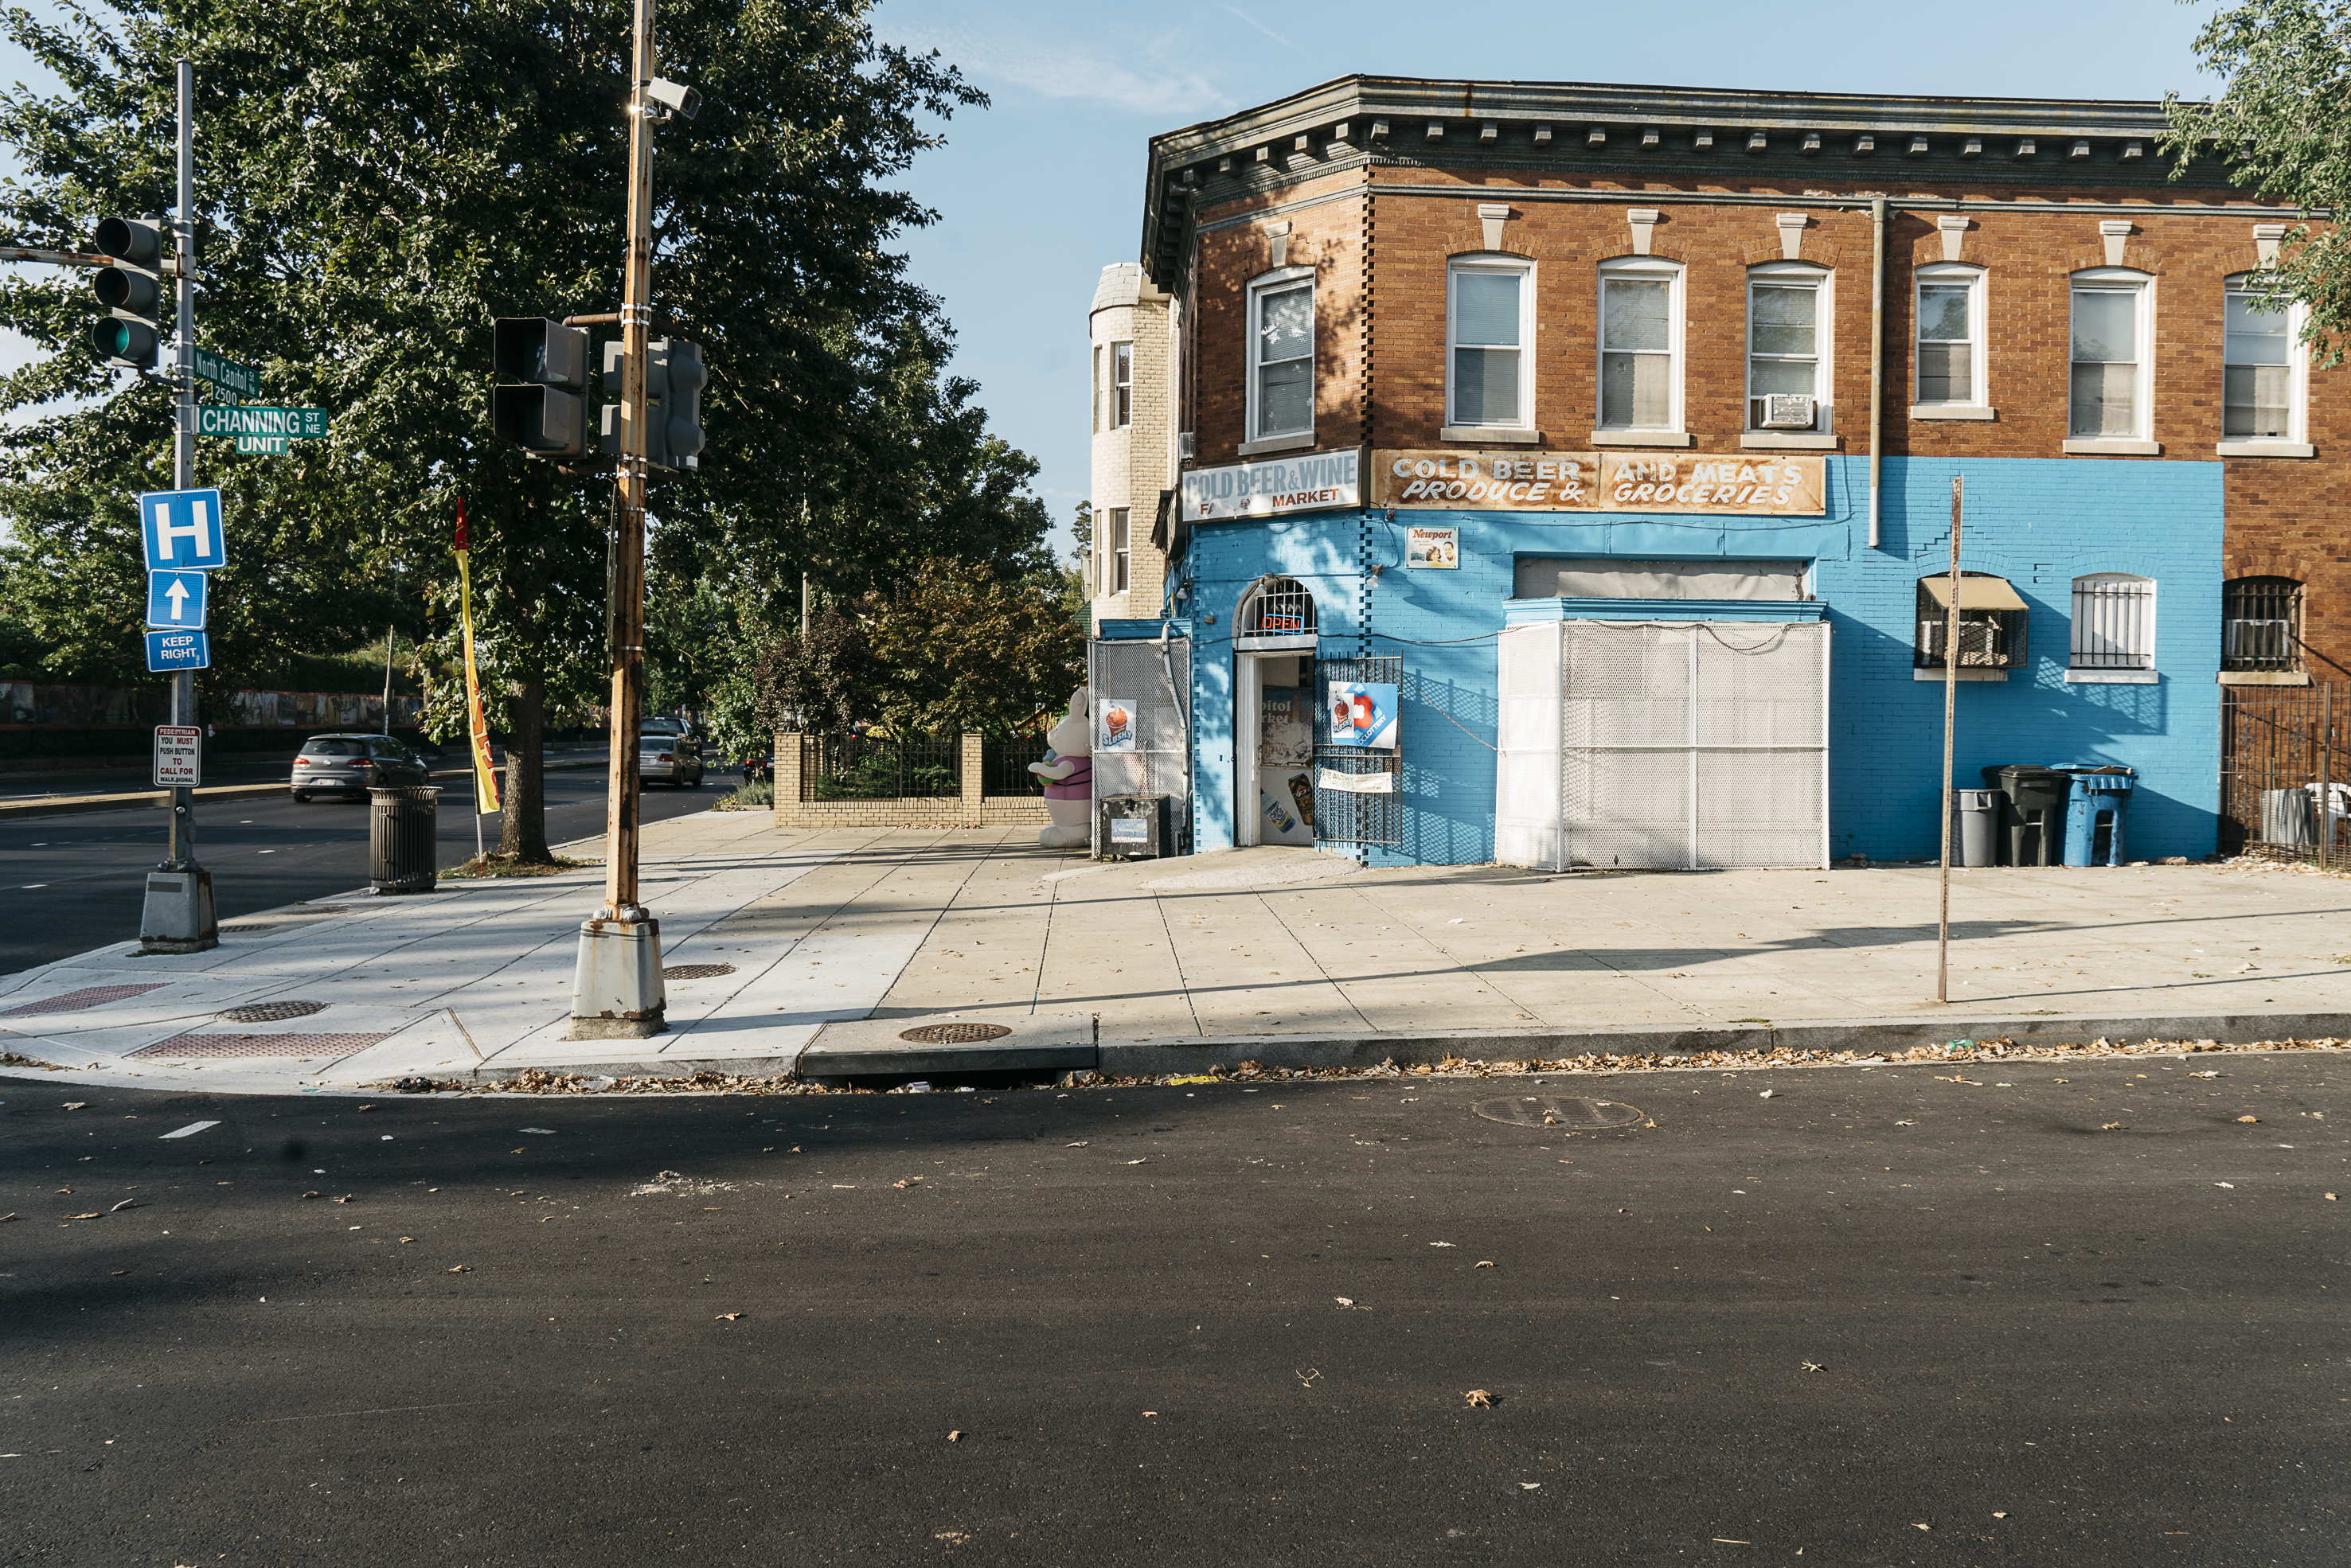 A bodega on the corner of North Capitol Street Channing Street NE, about a block from the crash site